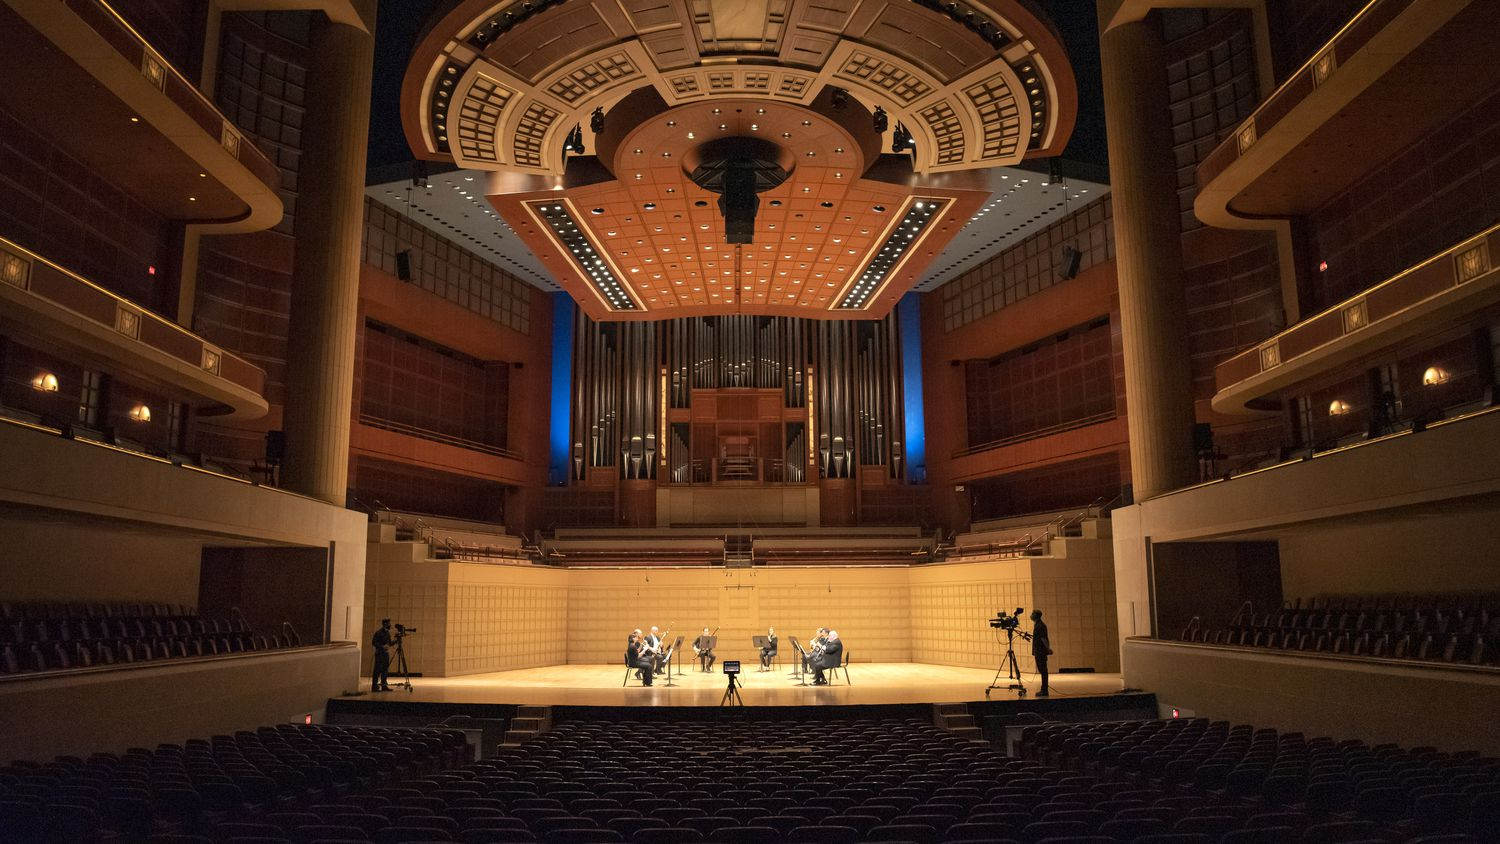 Camera operators, far-left and far-right, record the Dallas Symphony Orchestra as they perform Mozart Serenade in C minor, K. 388 for wind octet, part of their Summer Chamber Music, at the Morton H. Meyerson Symphony Center in Dallas, Saturday, June 13, 2020.